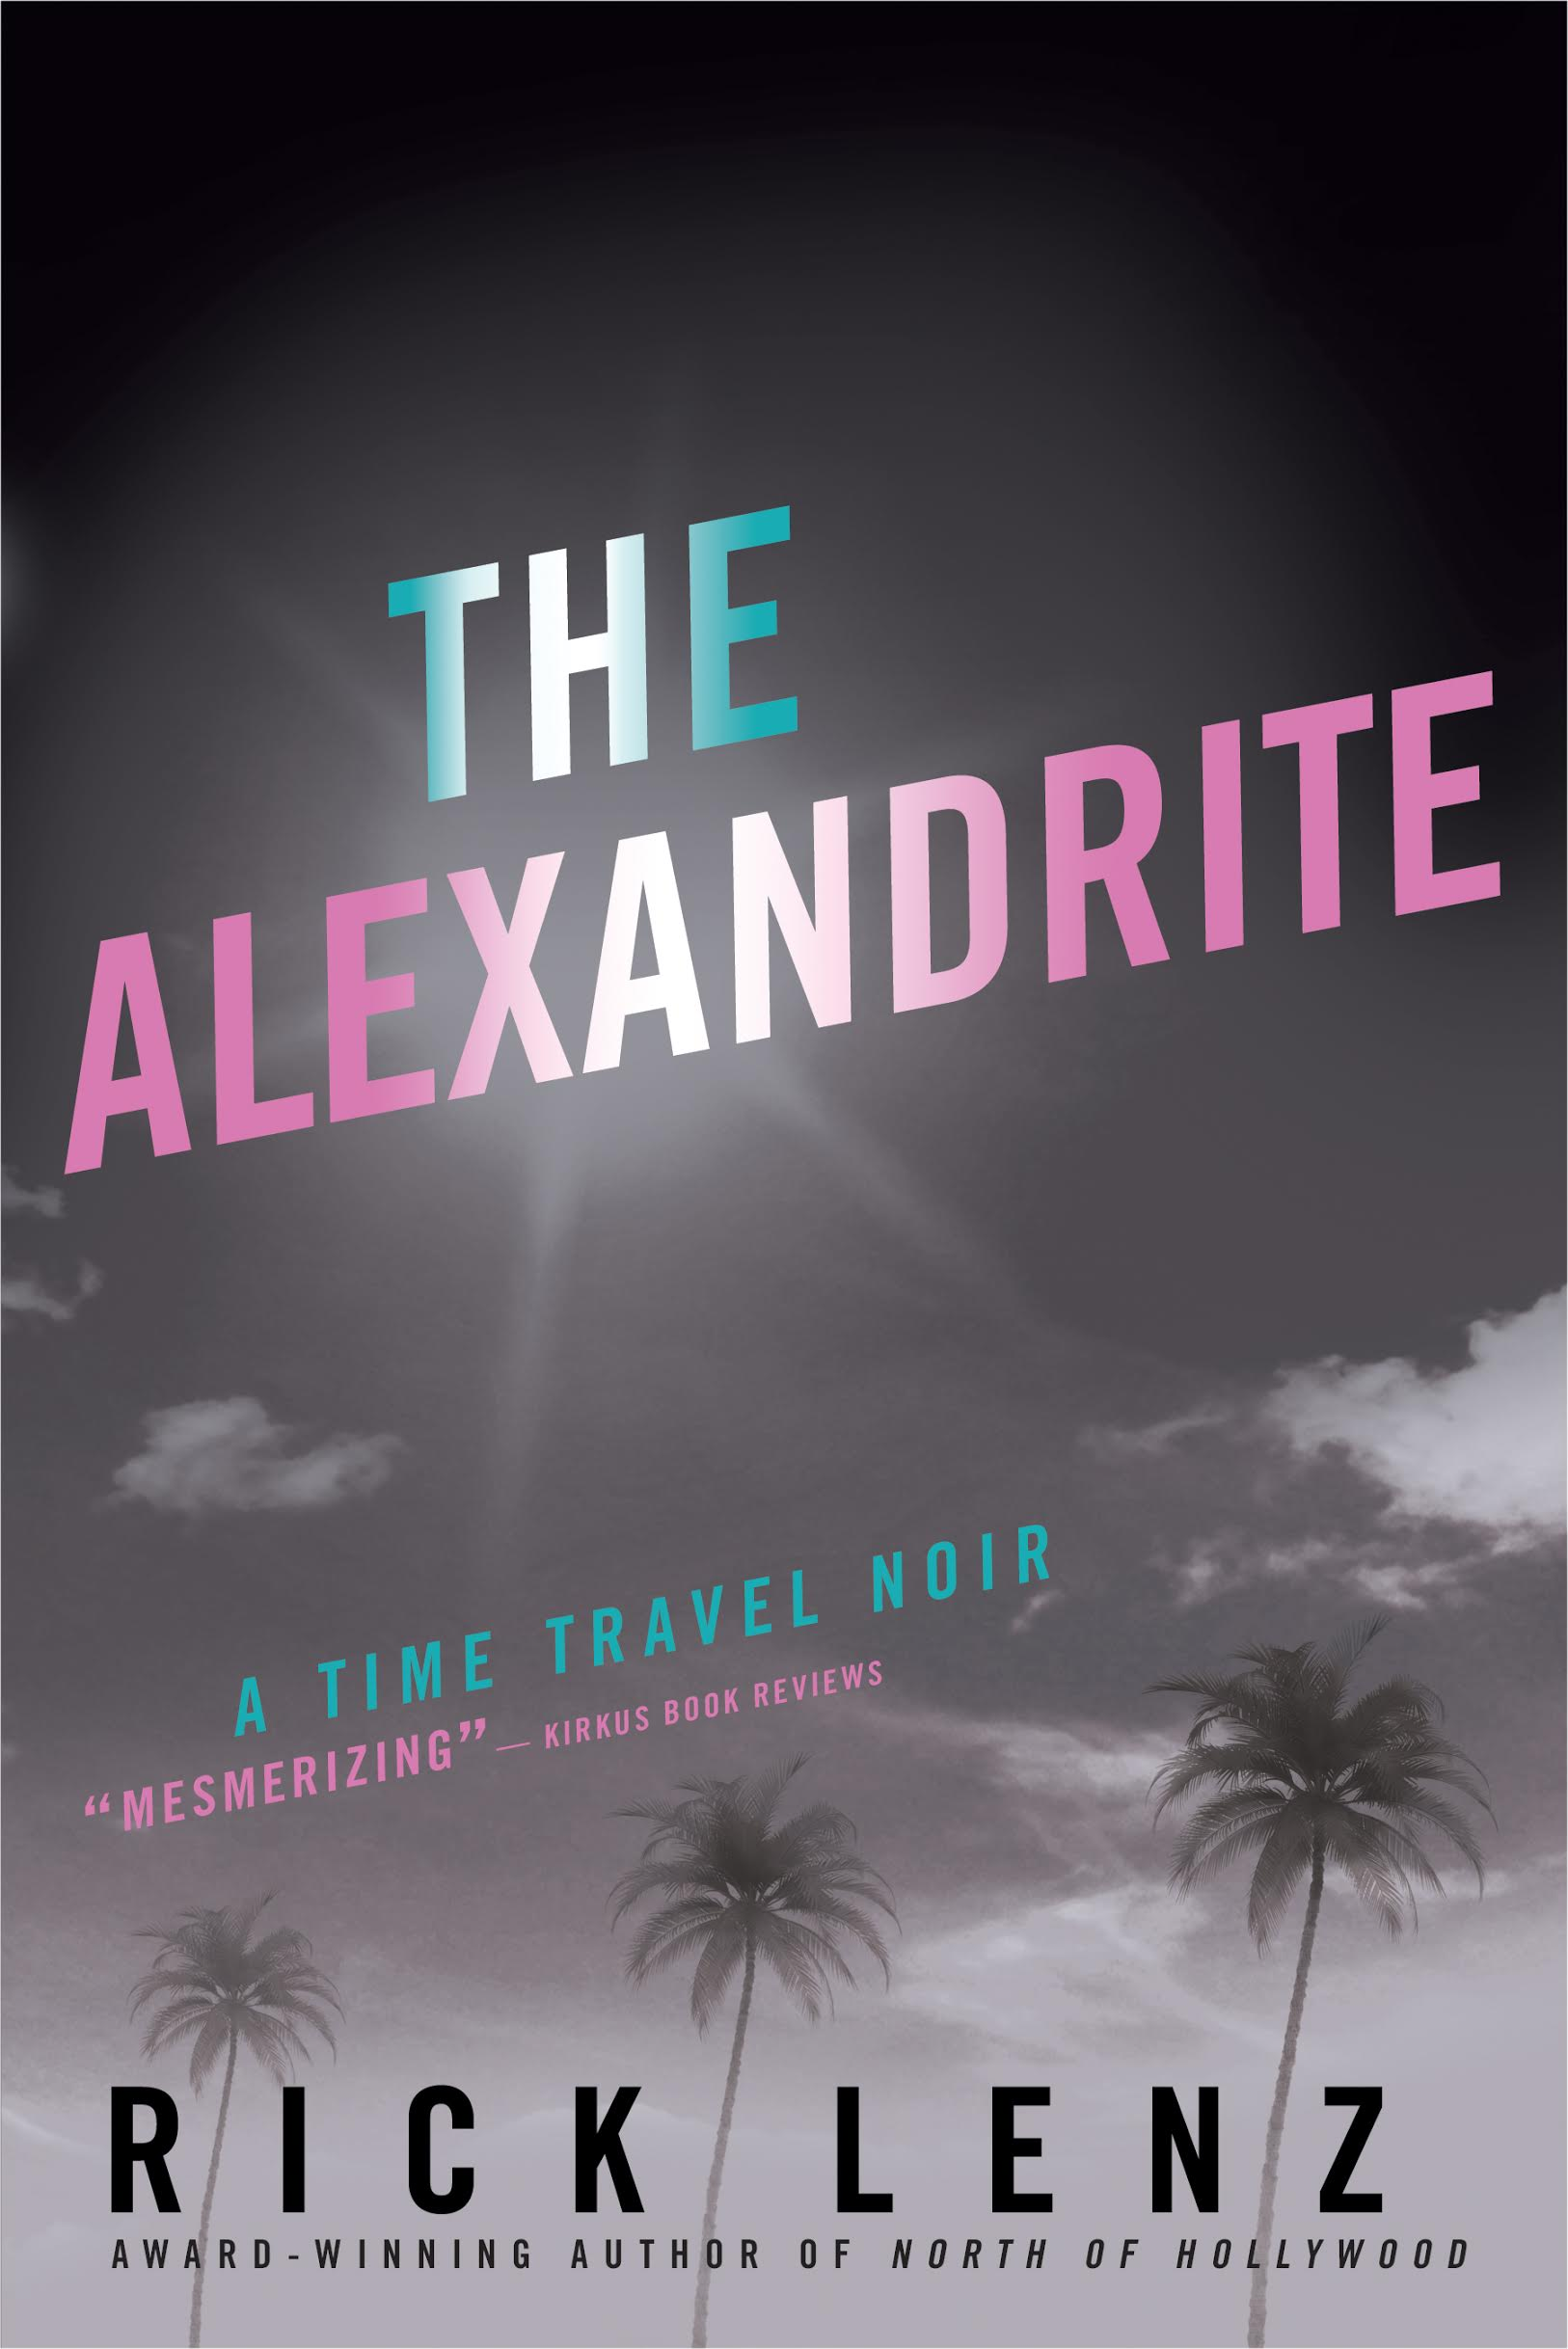 The Alexandrite - ebook cover 8.6.15(1)